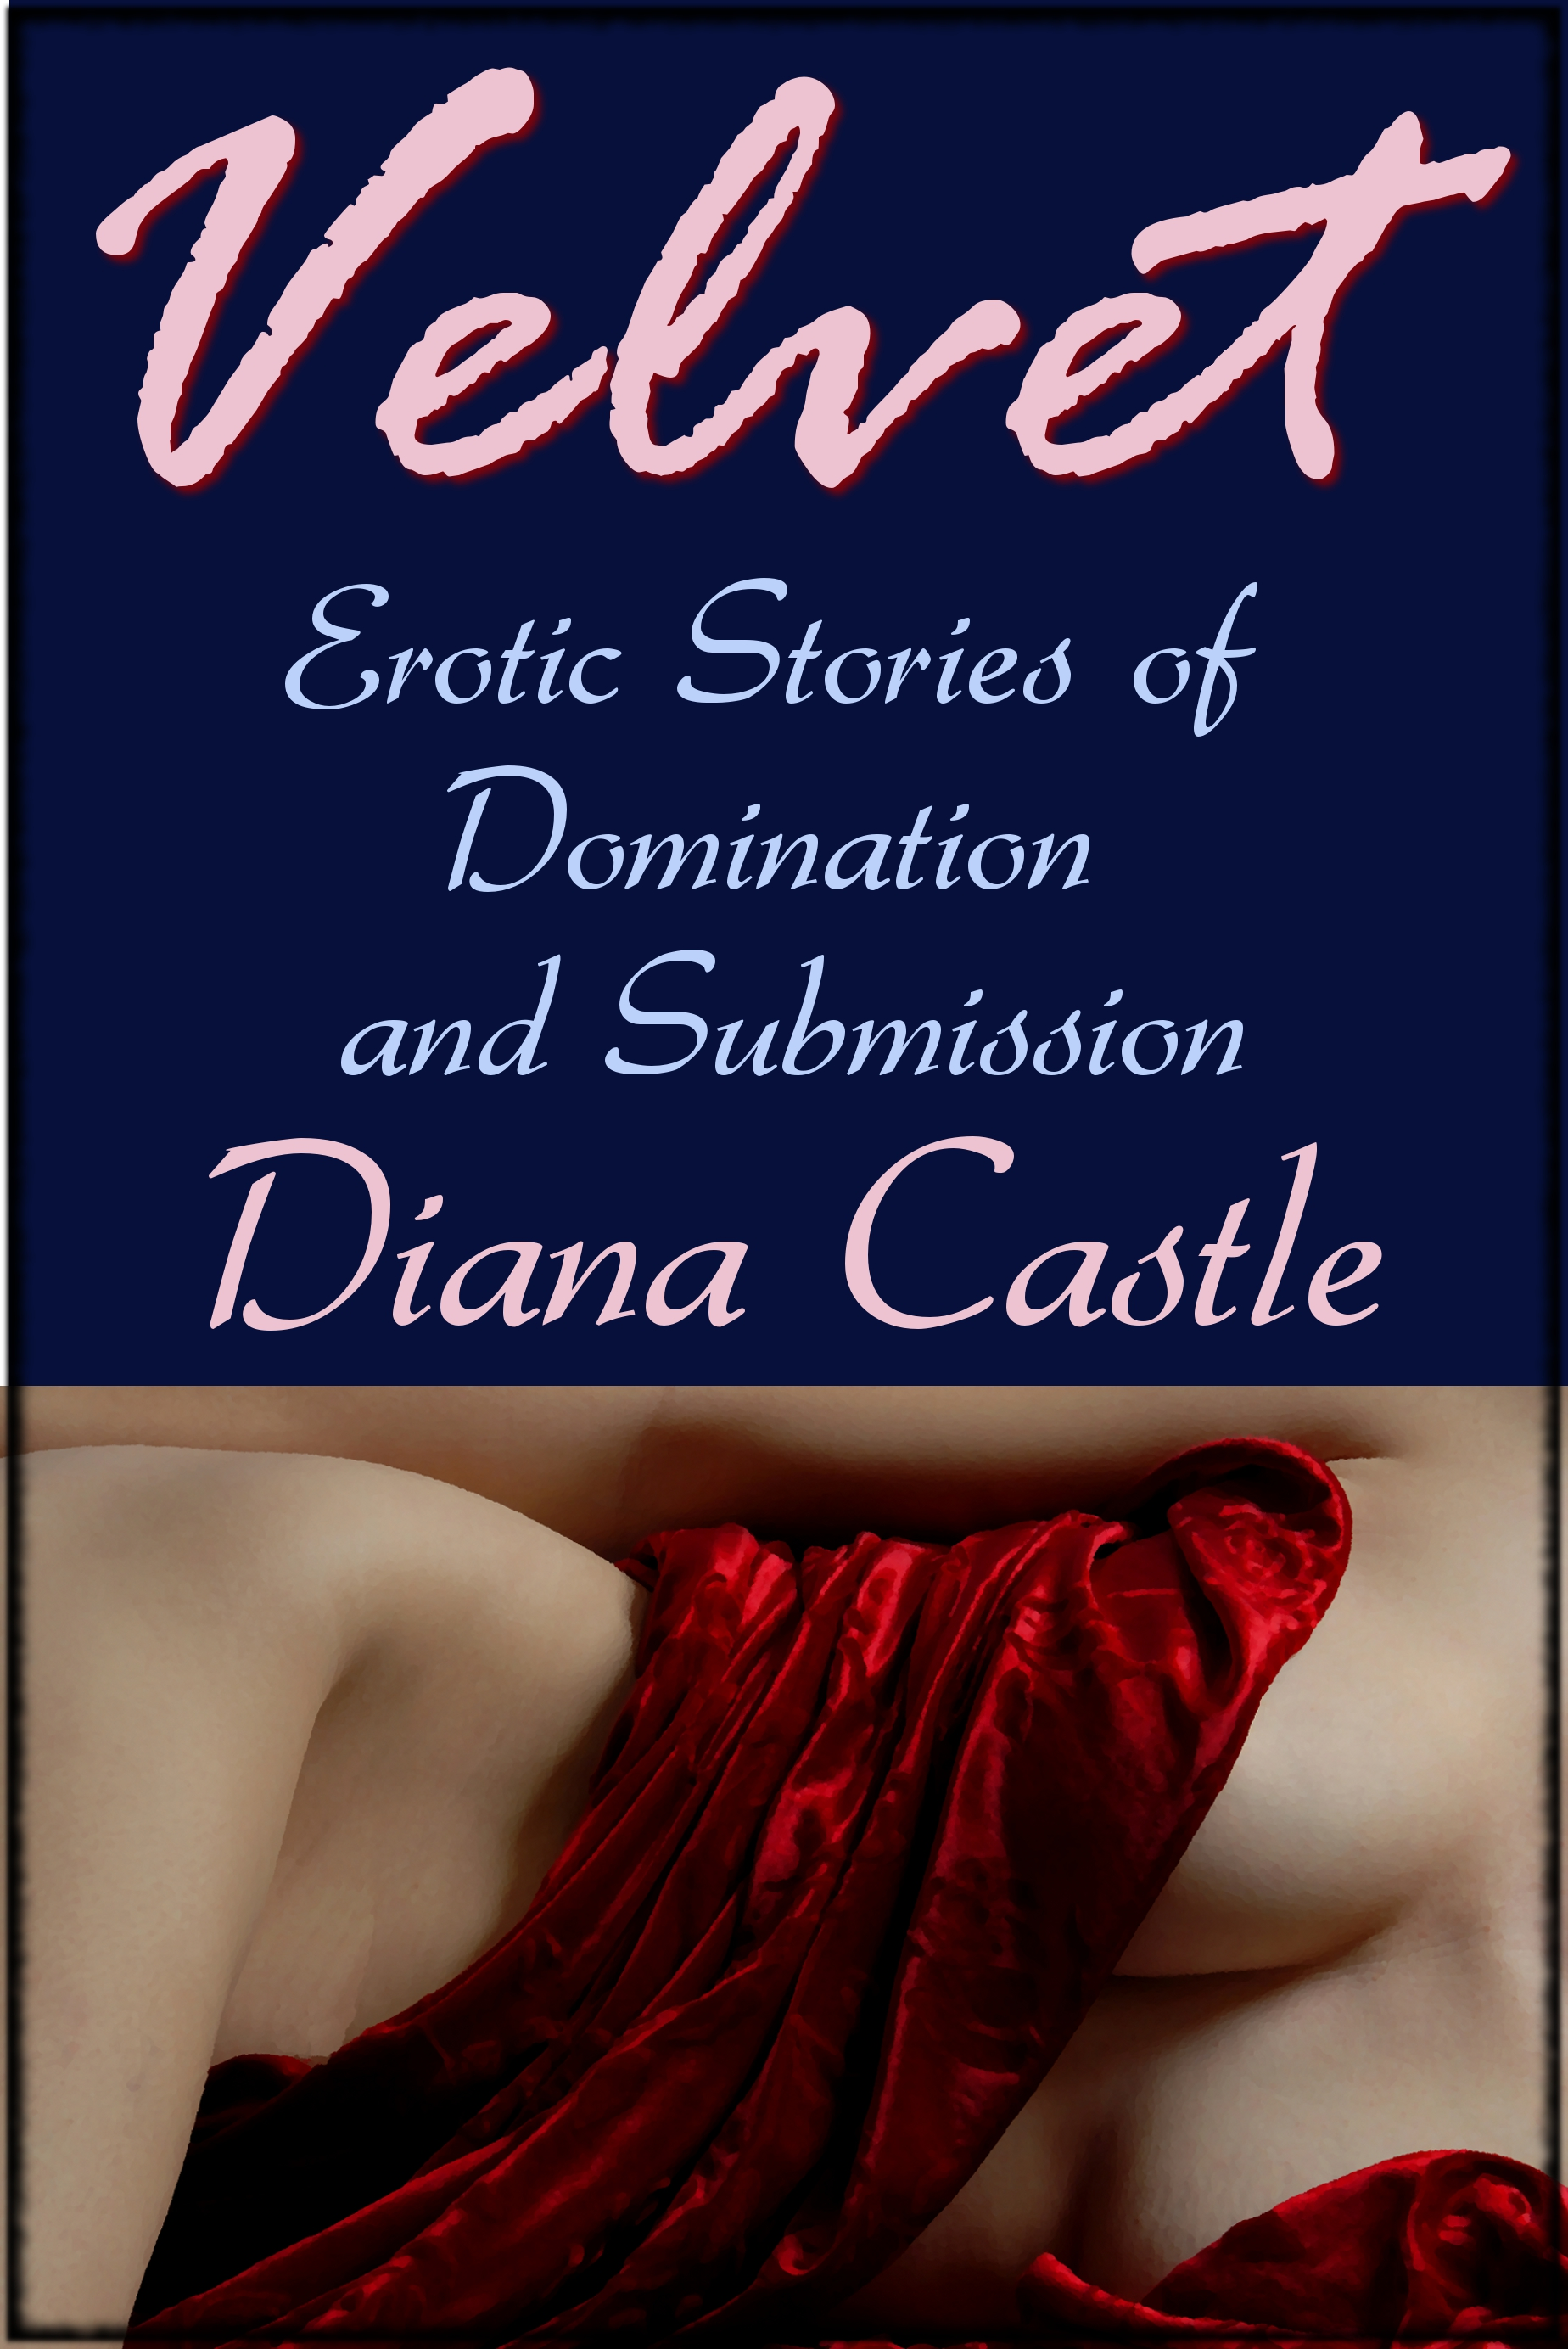 Diana Castle - Velvet (Erotic Stories of Domination and Submission)